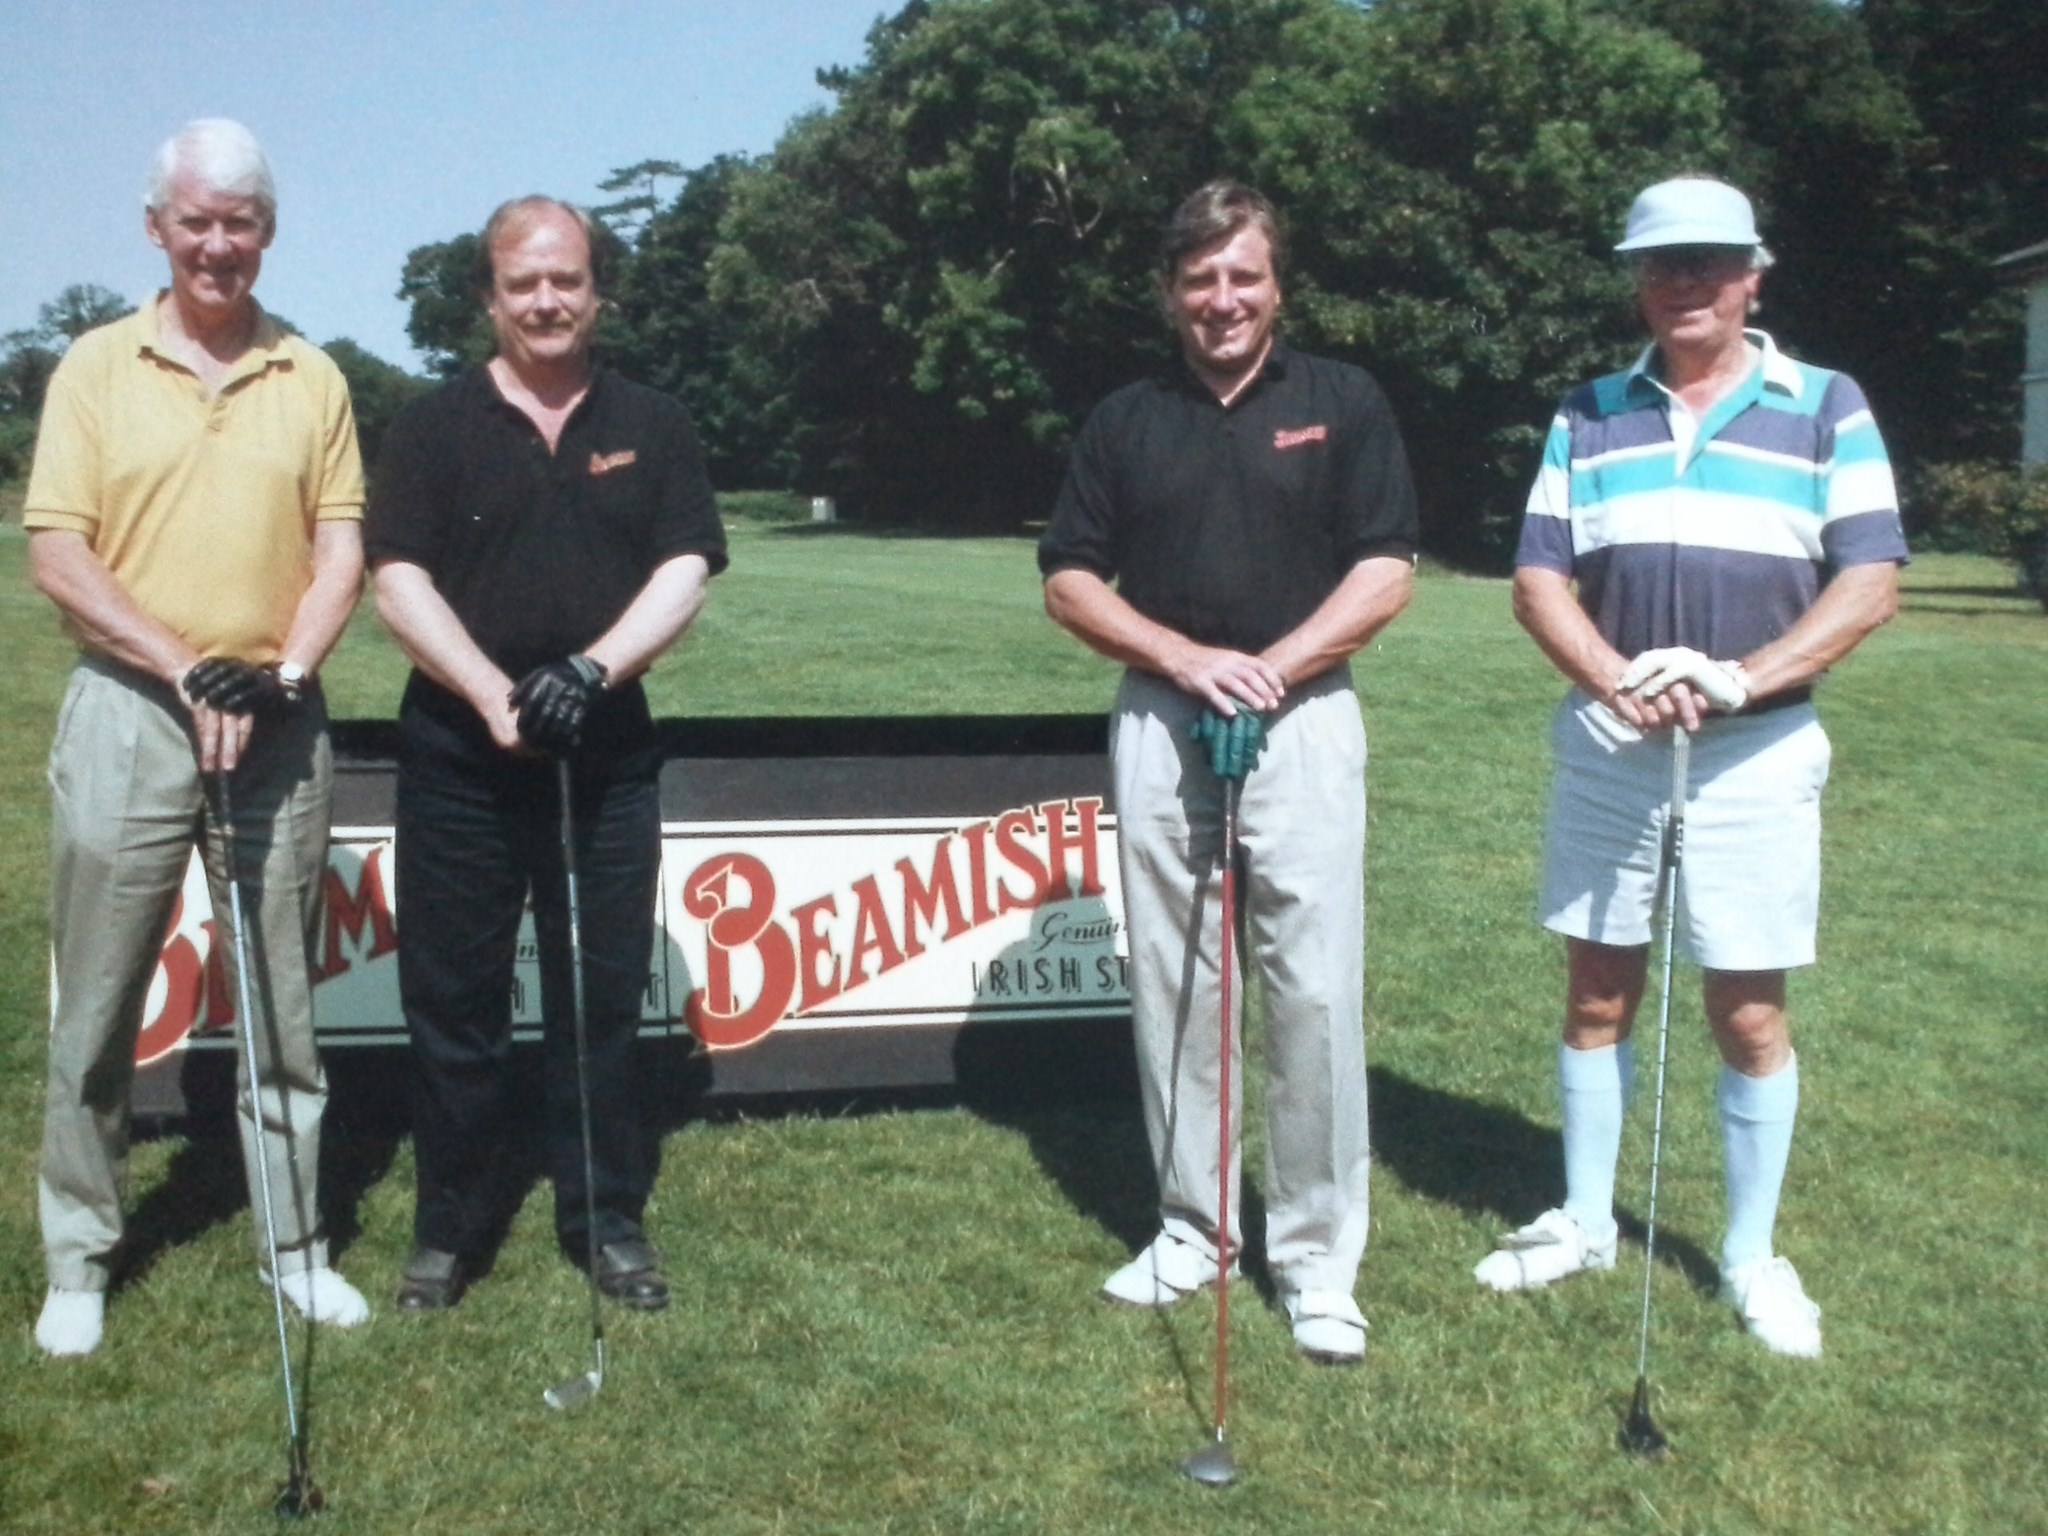 Beamish golf day. Phil Harding, Nigel Ashton, Paul & Bill